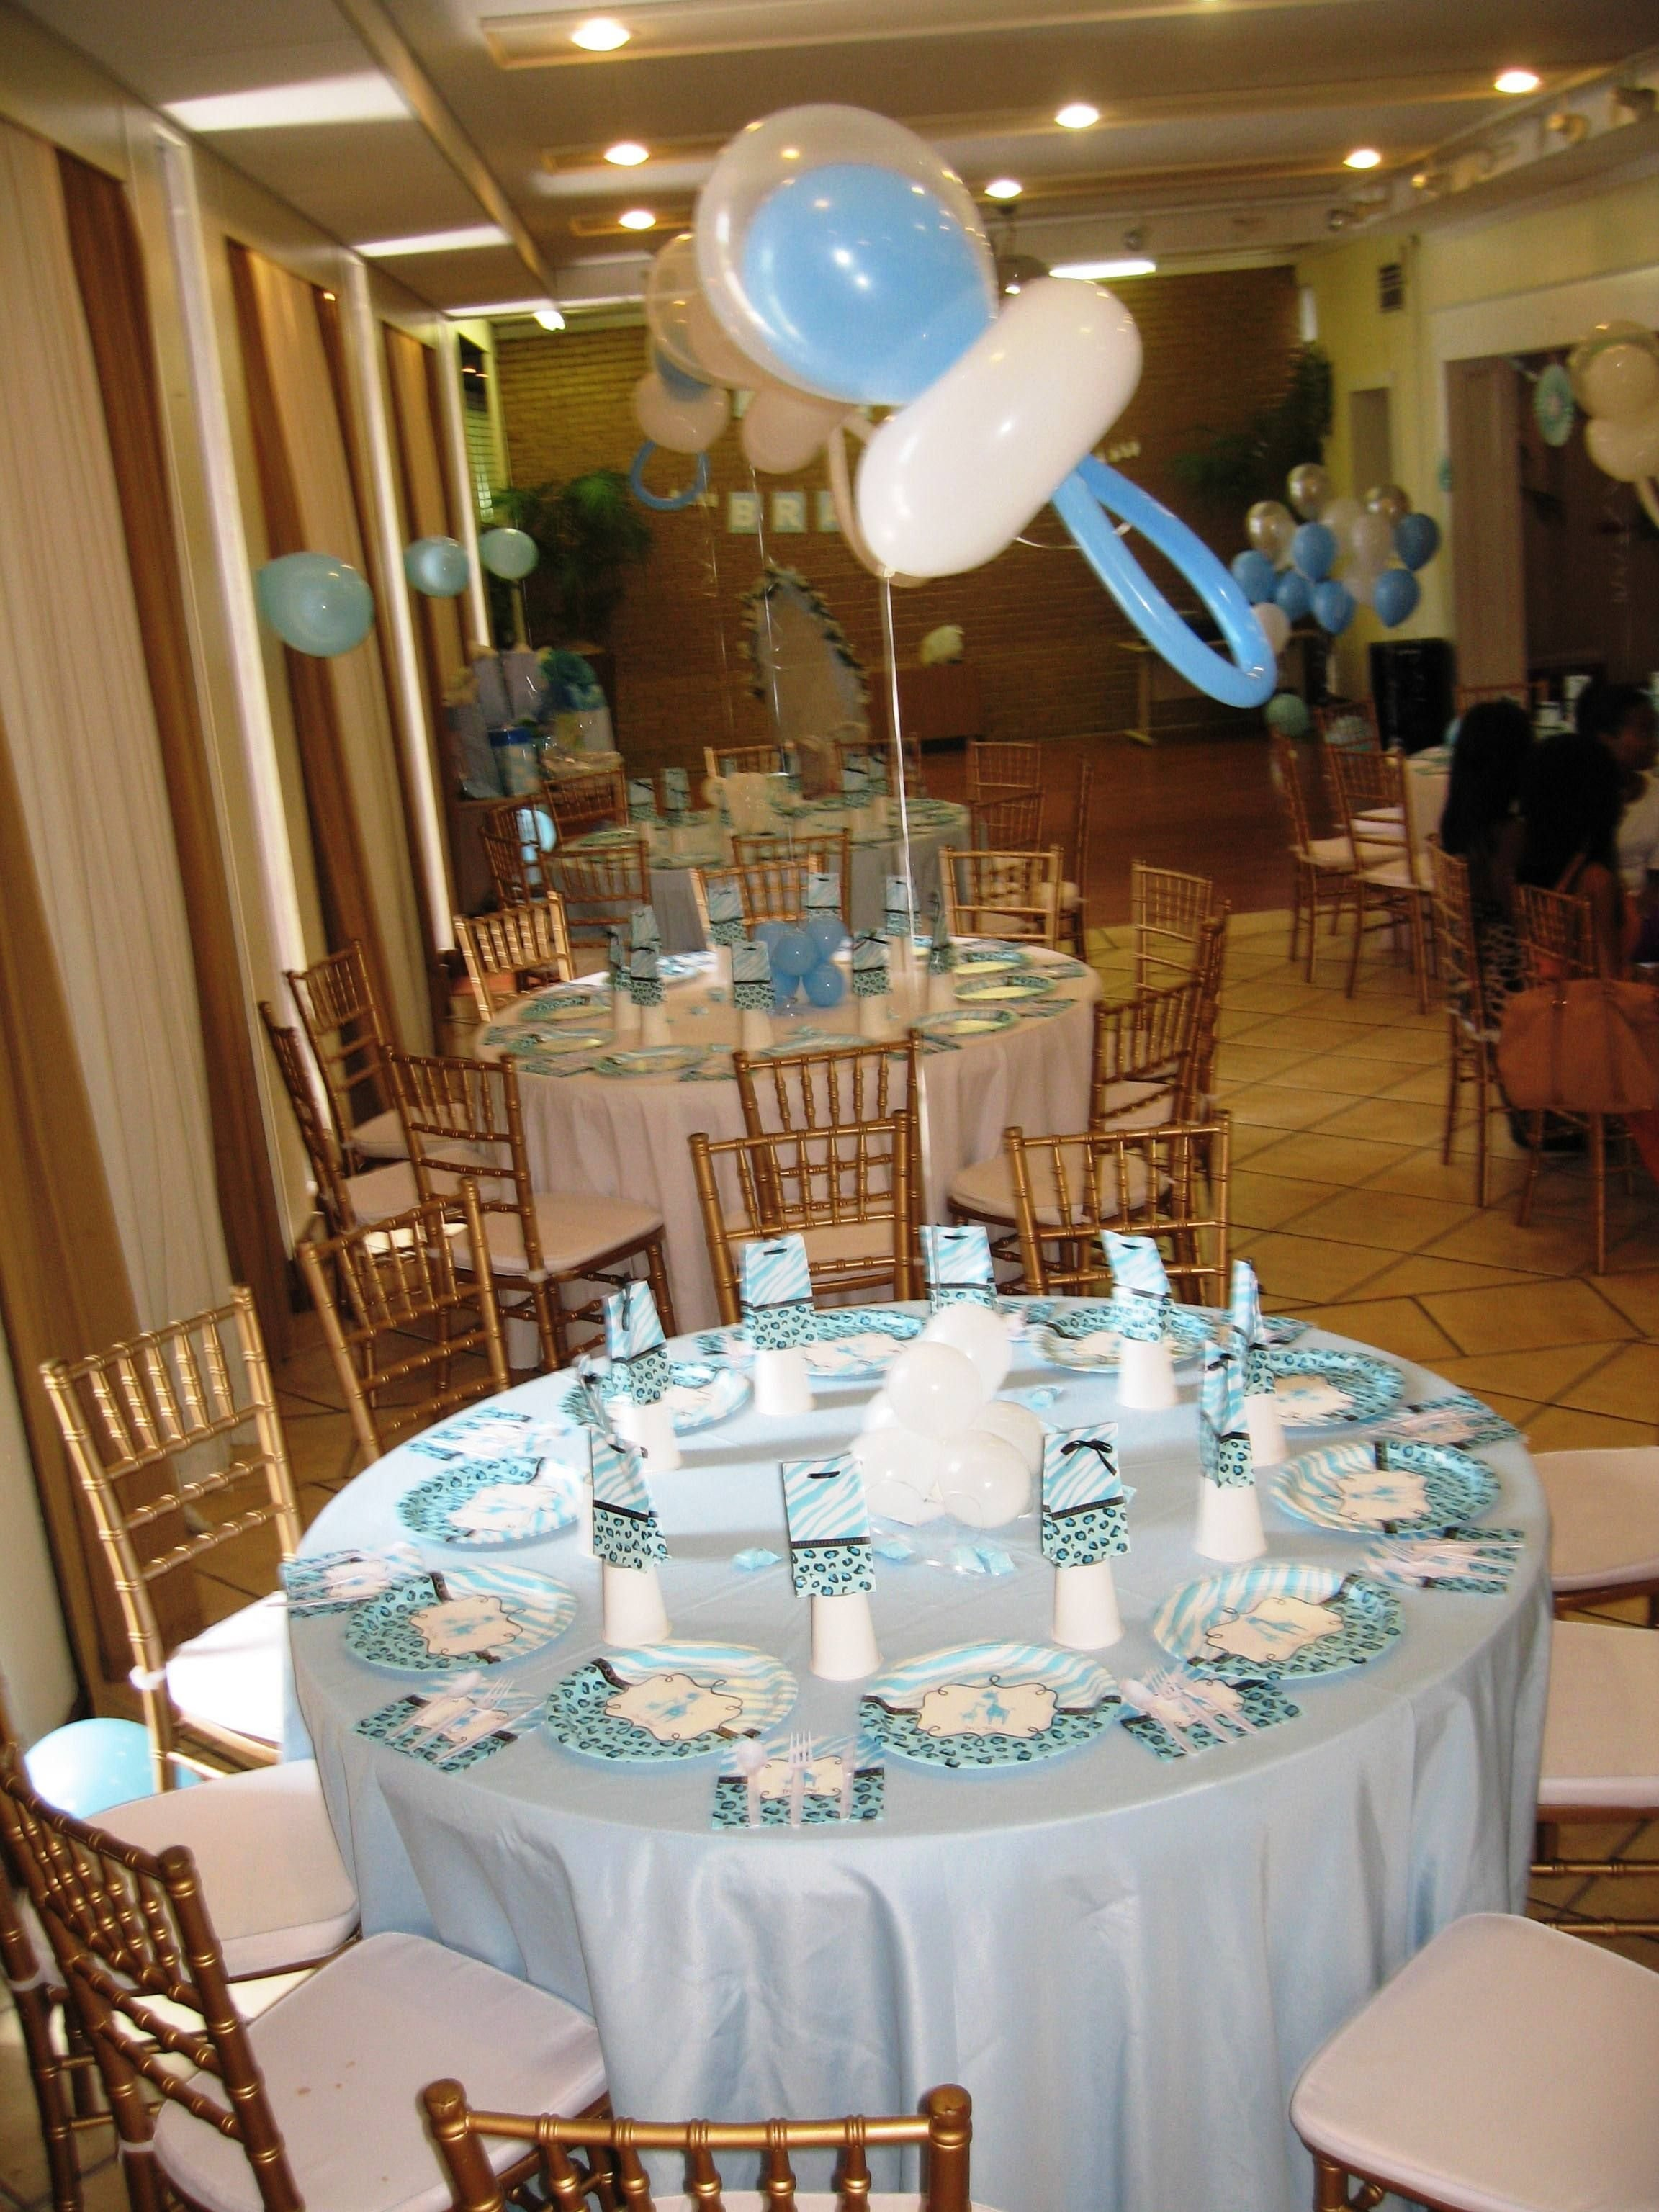 10 Attractive Decorating Ideas For A Baby Shower baby shower table decorating ideas unique centerpieces decoration 2021